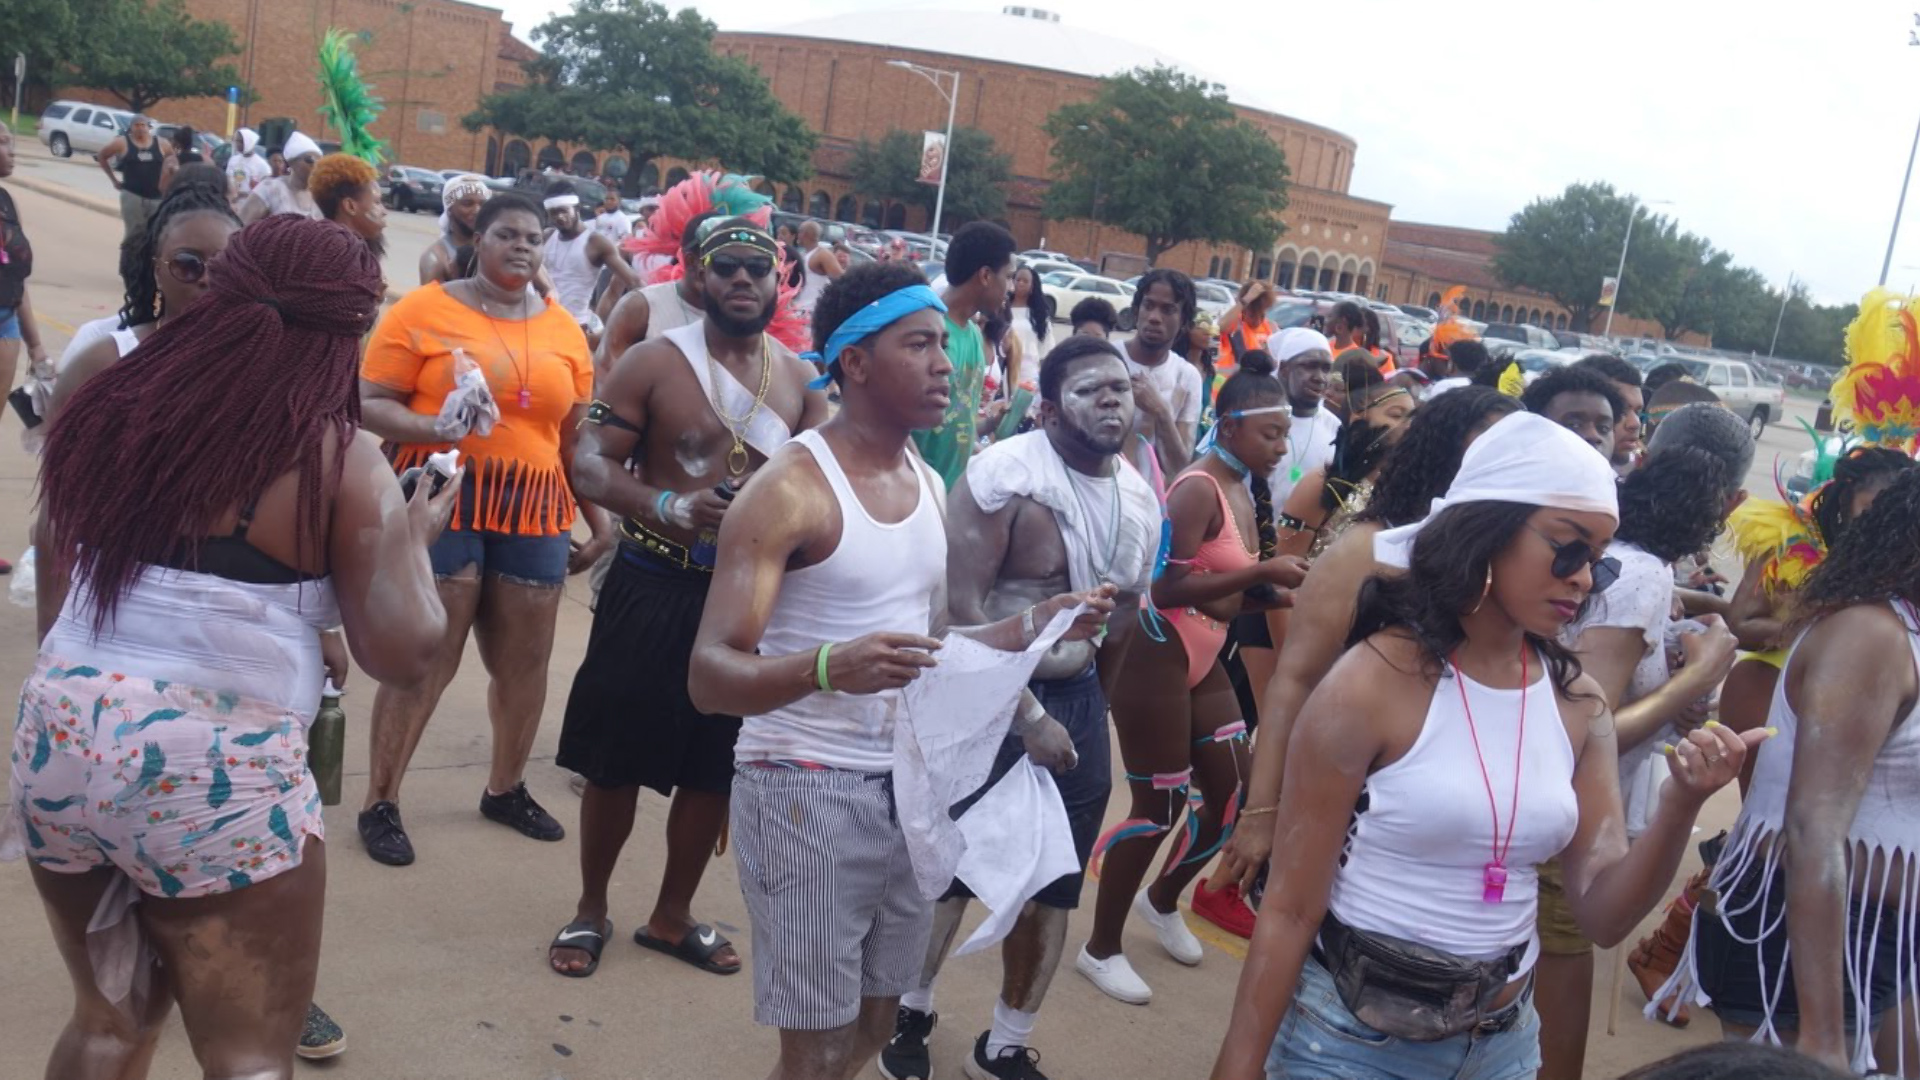 The Caribbean Student's Organization at MSU is hosting its 22nd annual Caribfest, the official events kicked off Thursday night with a pageant.